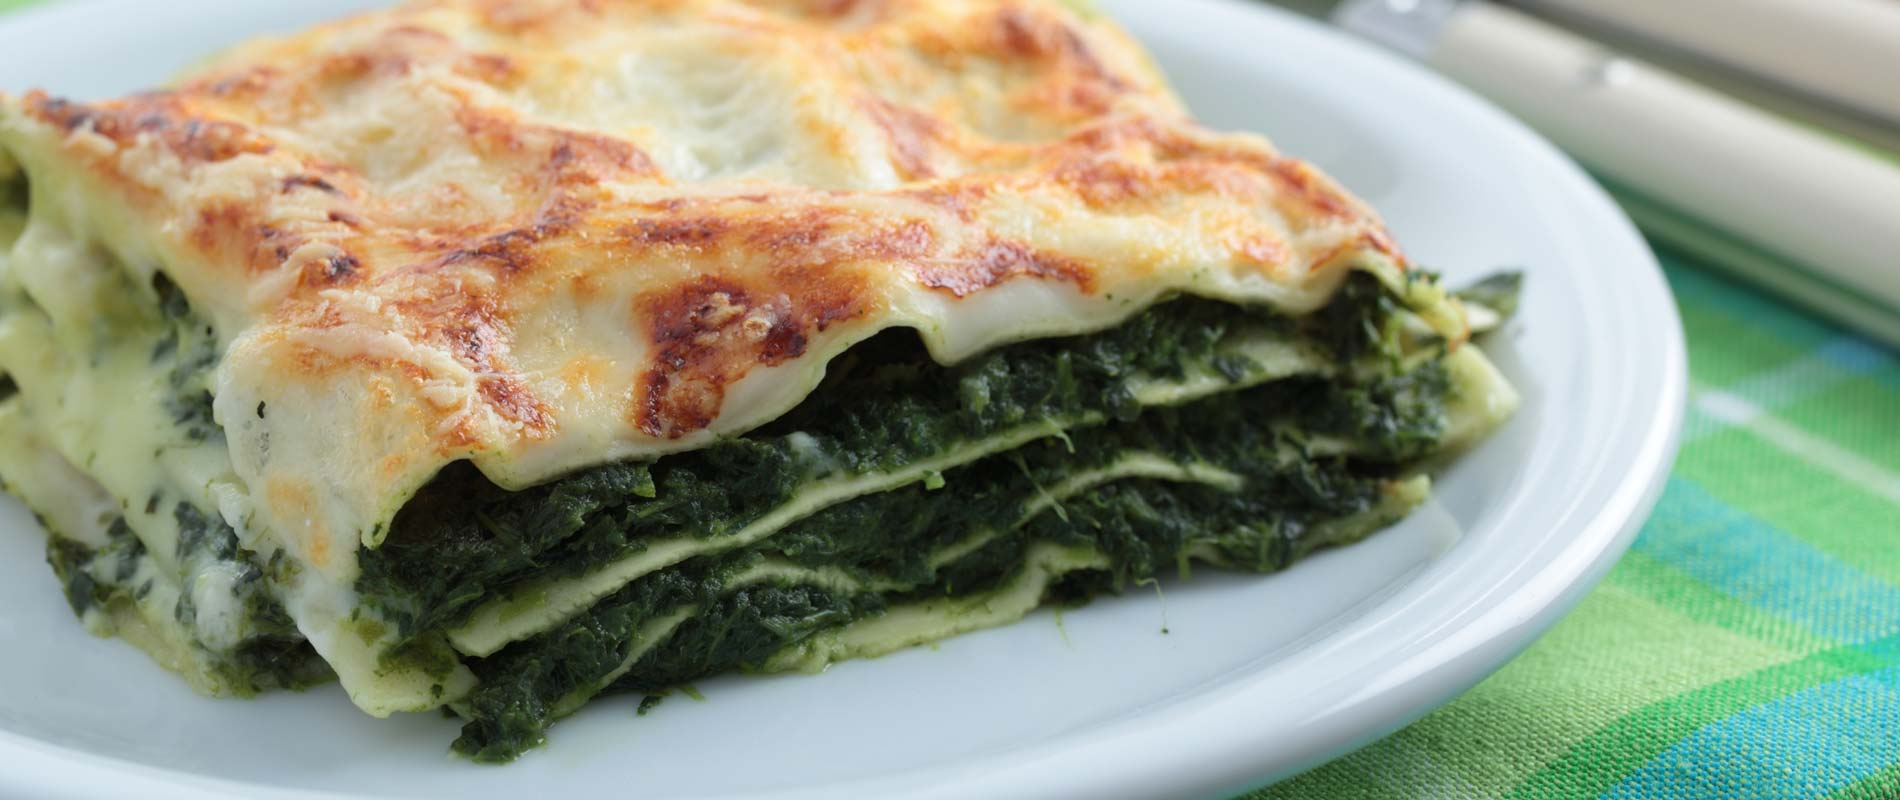 Enjoy a tasty spinach lasagne